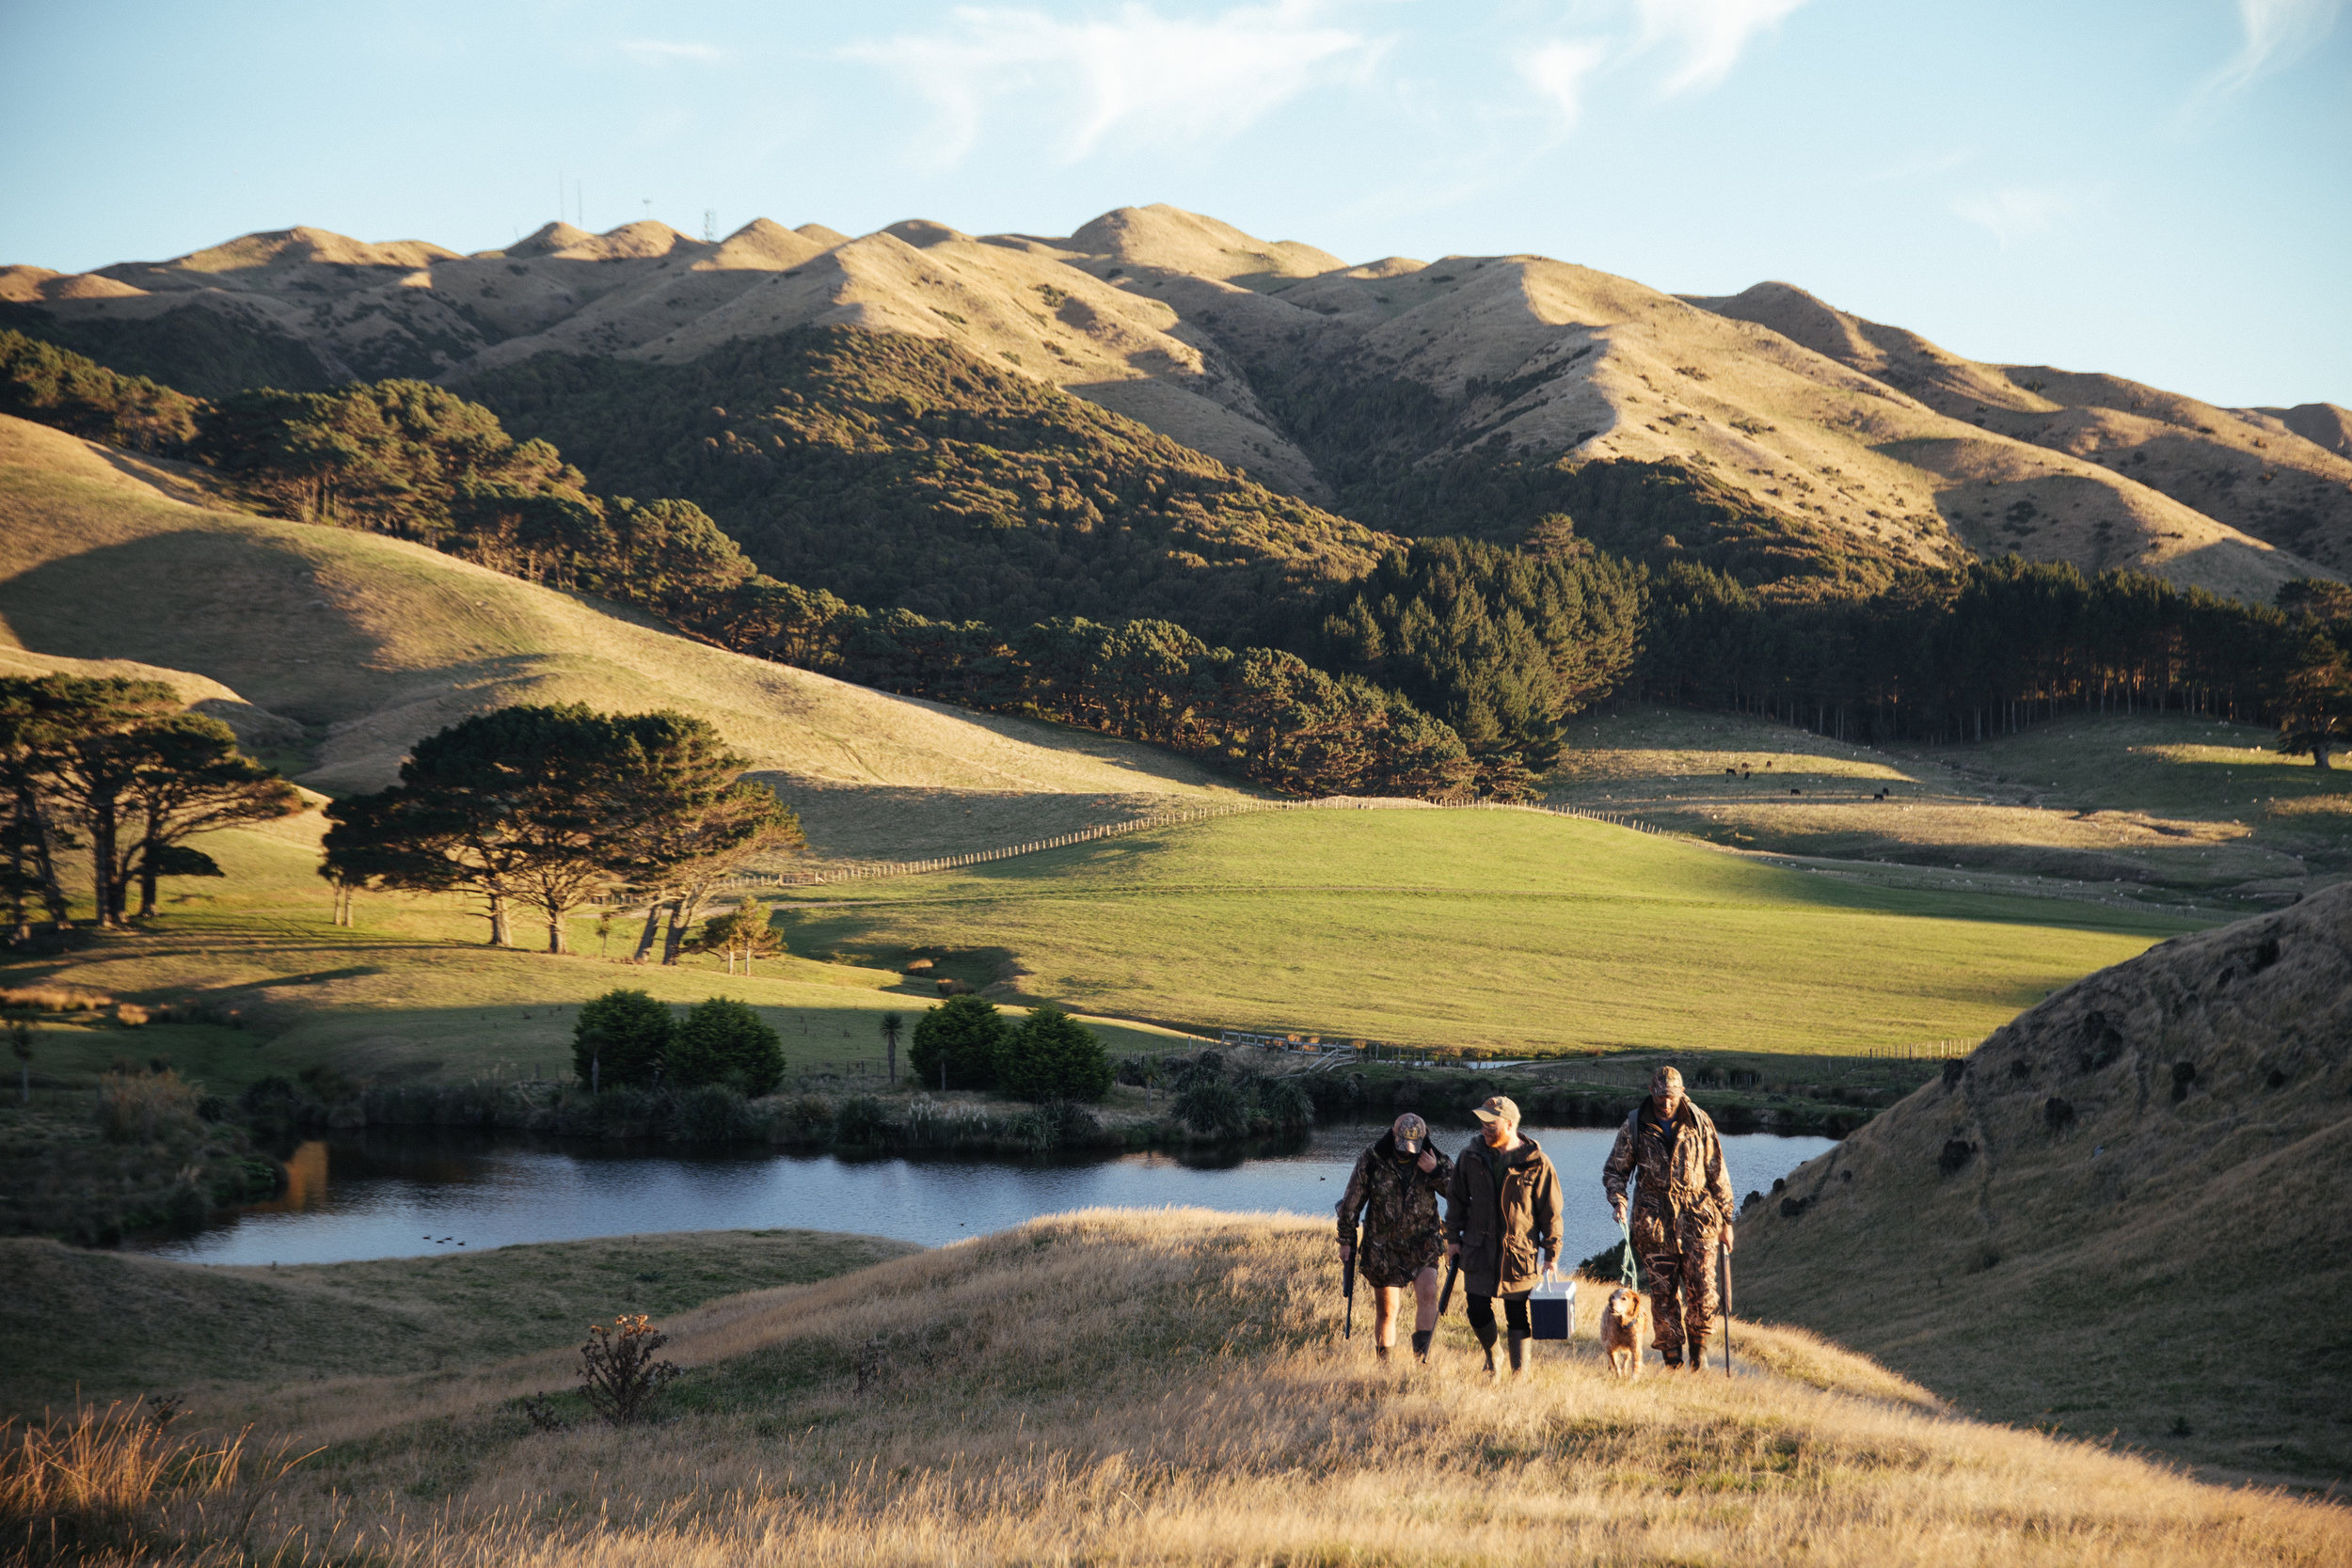 Beautiful products in beautiful places - We want to showcase Jetboil products in the beautiful place we call home - New Zealand. Localising the product connects our target market and encourages the viewer to hit the trails.